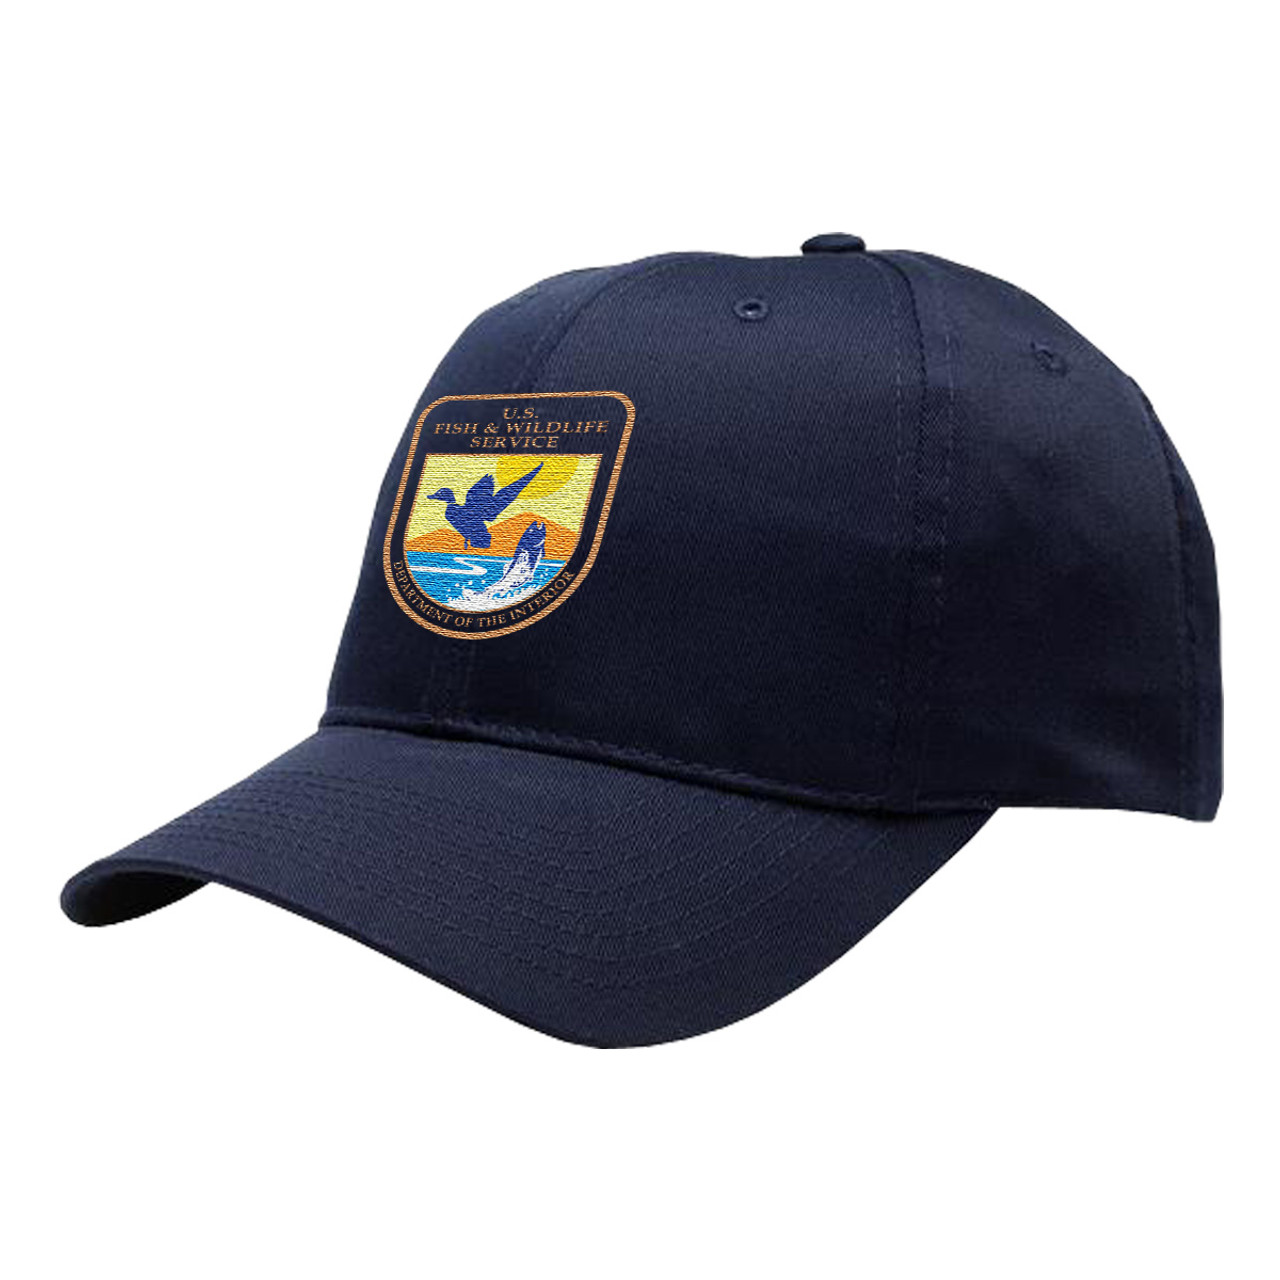 Fish & Wildlife Service Cap - Navy